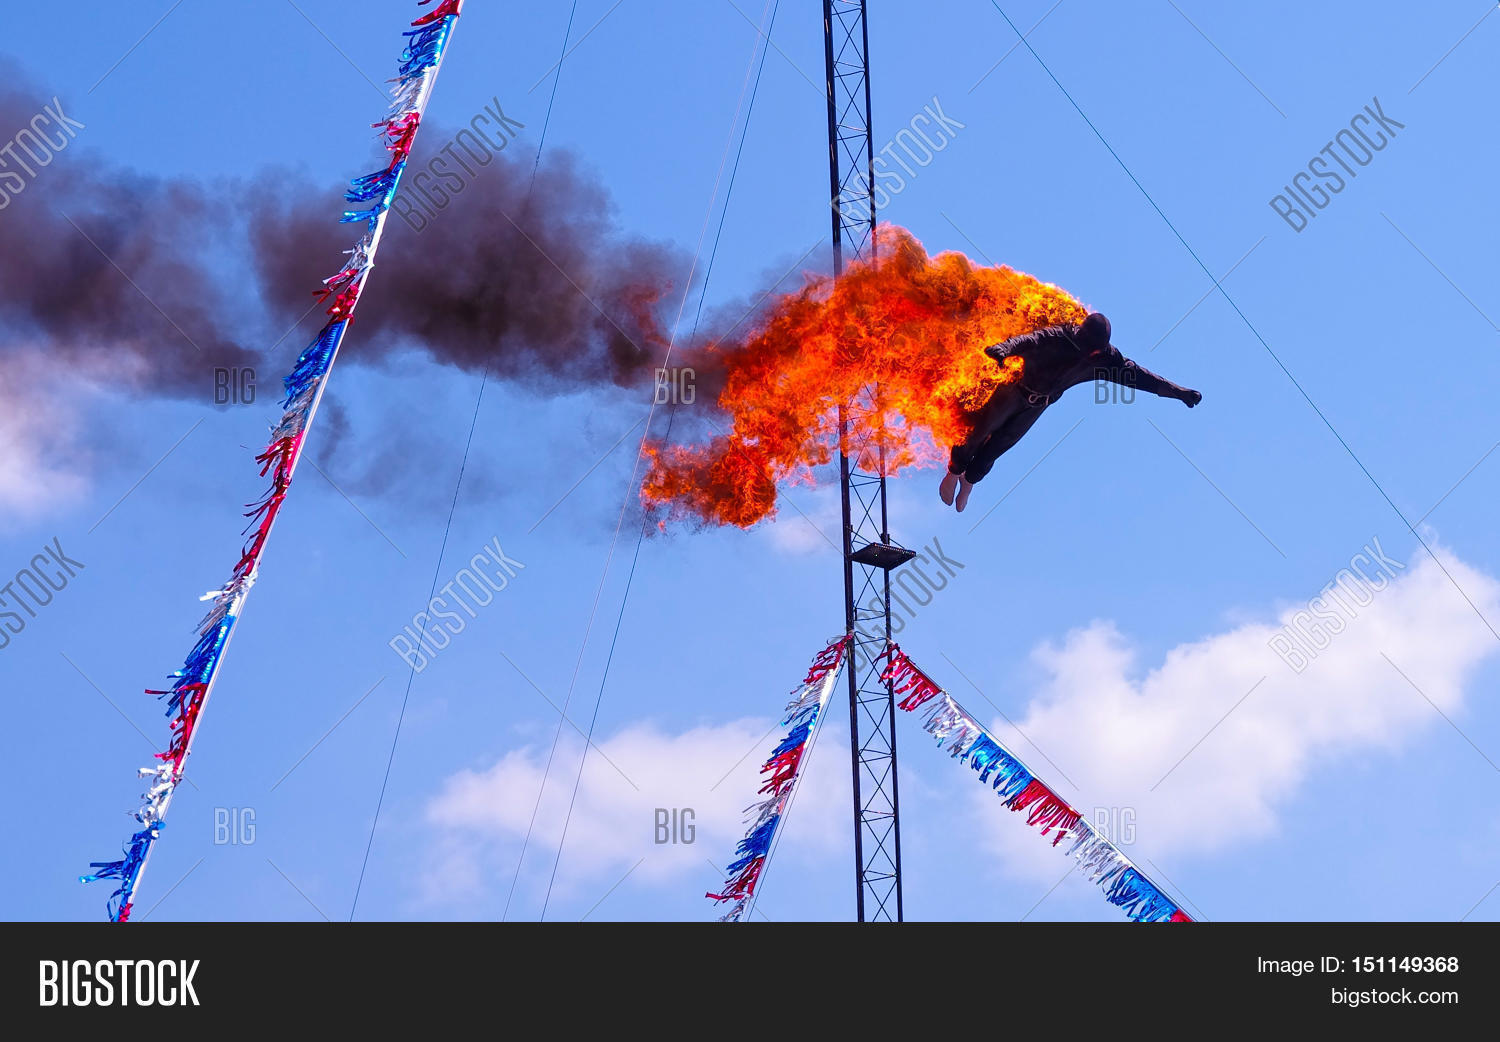 Fire diver daredevil performing off image photo bigstock for Extreme pool show